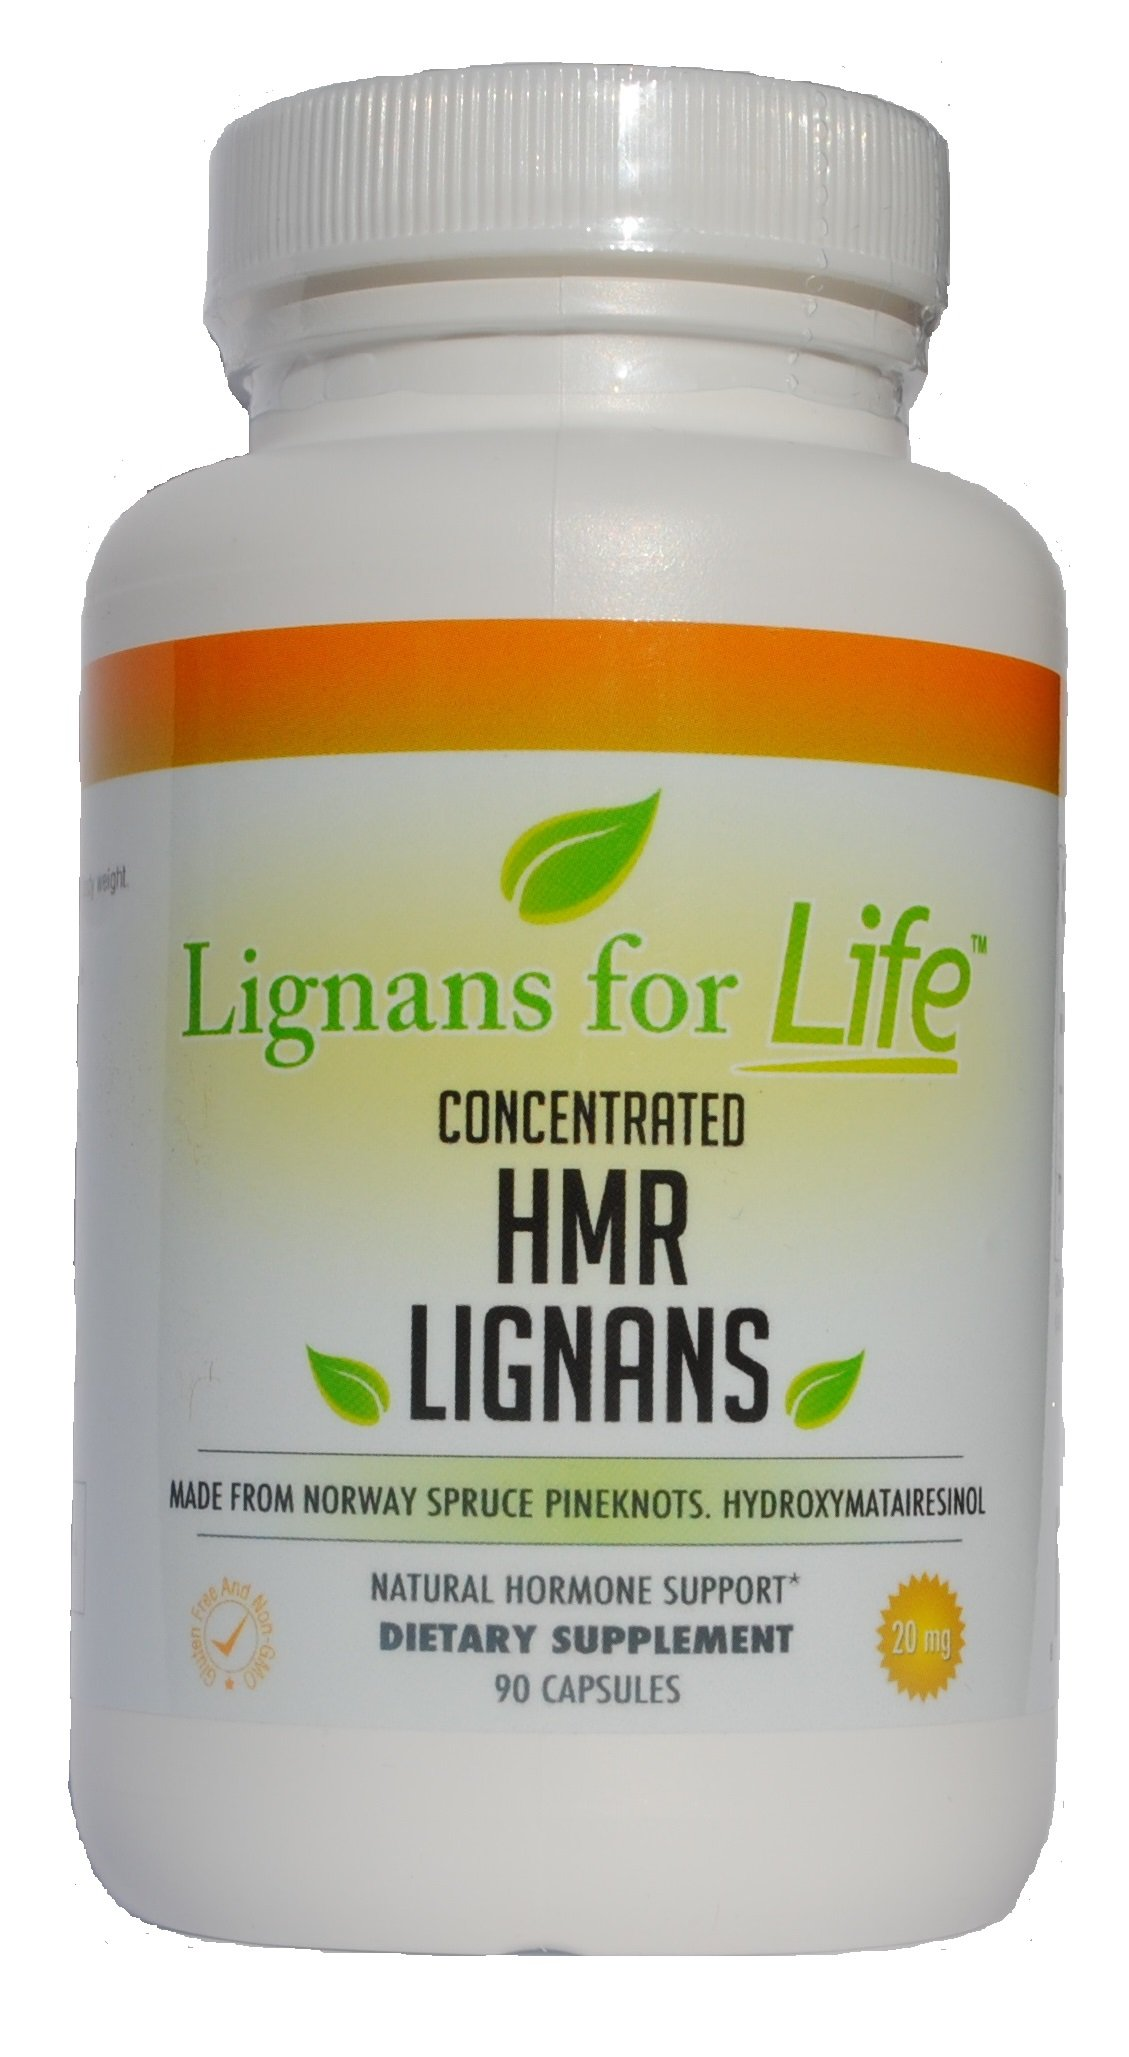 HMR Lignan 20 Mg 90 Ct Bottle